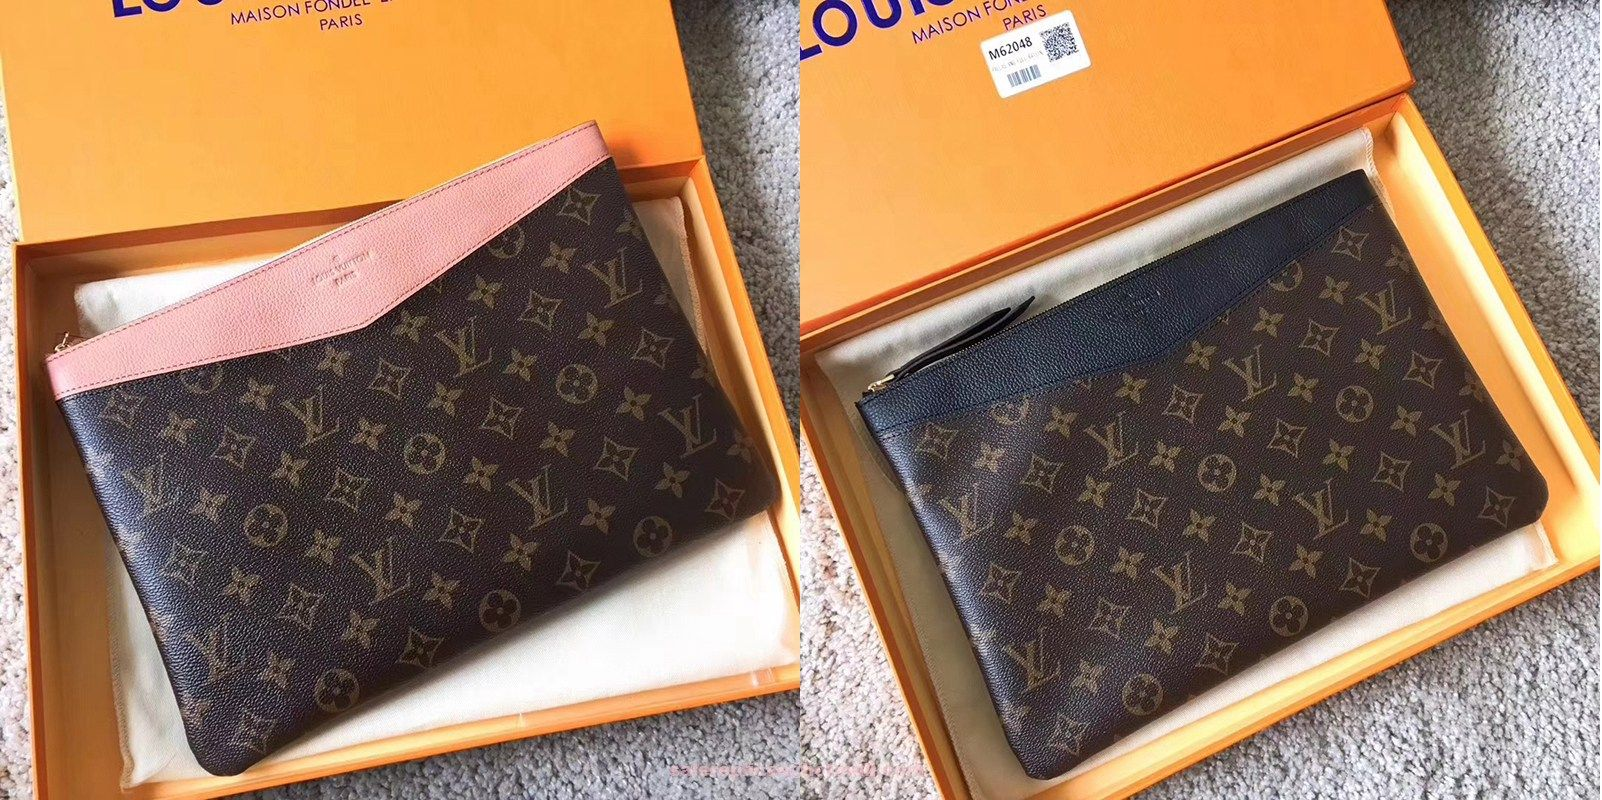 ecdf6e488b Louis Vuitton Daily Pouch | Luxury Clutches in 2019 | Louis vuitton ...